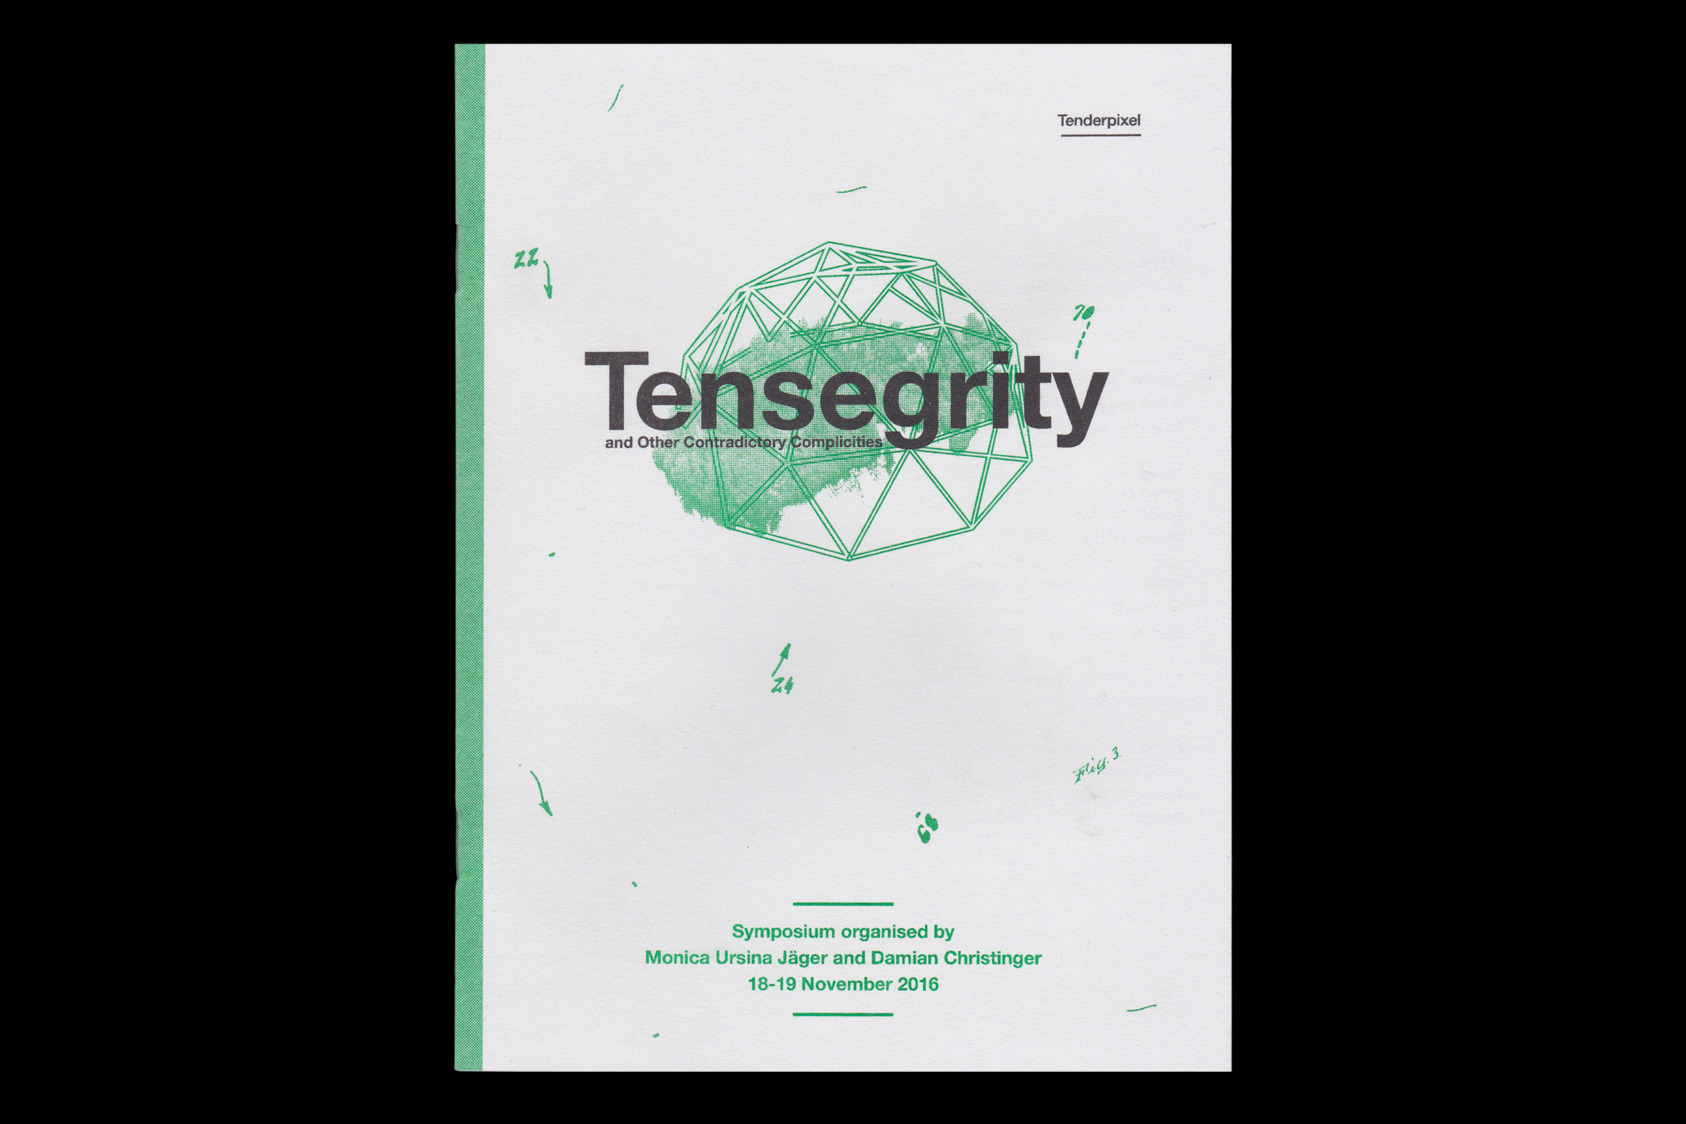 Tensegrity - a publication for Monica Ursina Jäger, Damian Christinger and Tenderpixel gallery, 2016 by the agency for emerging ideas